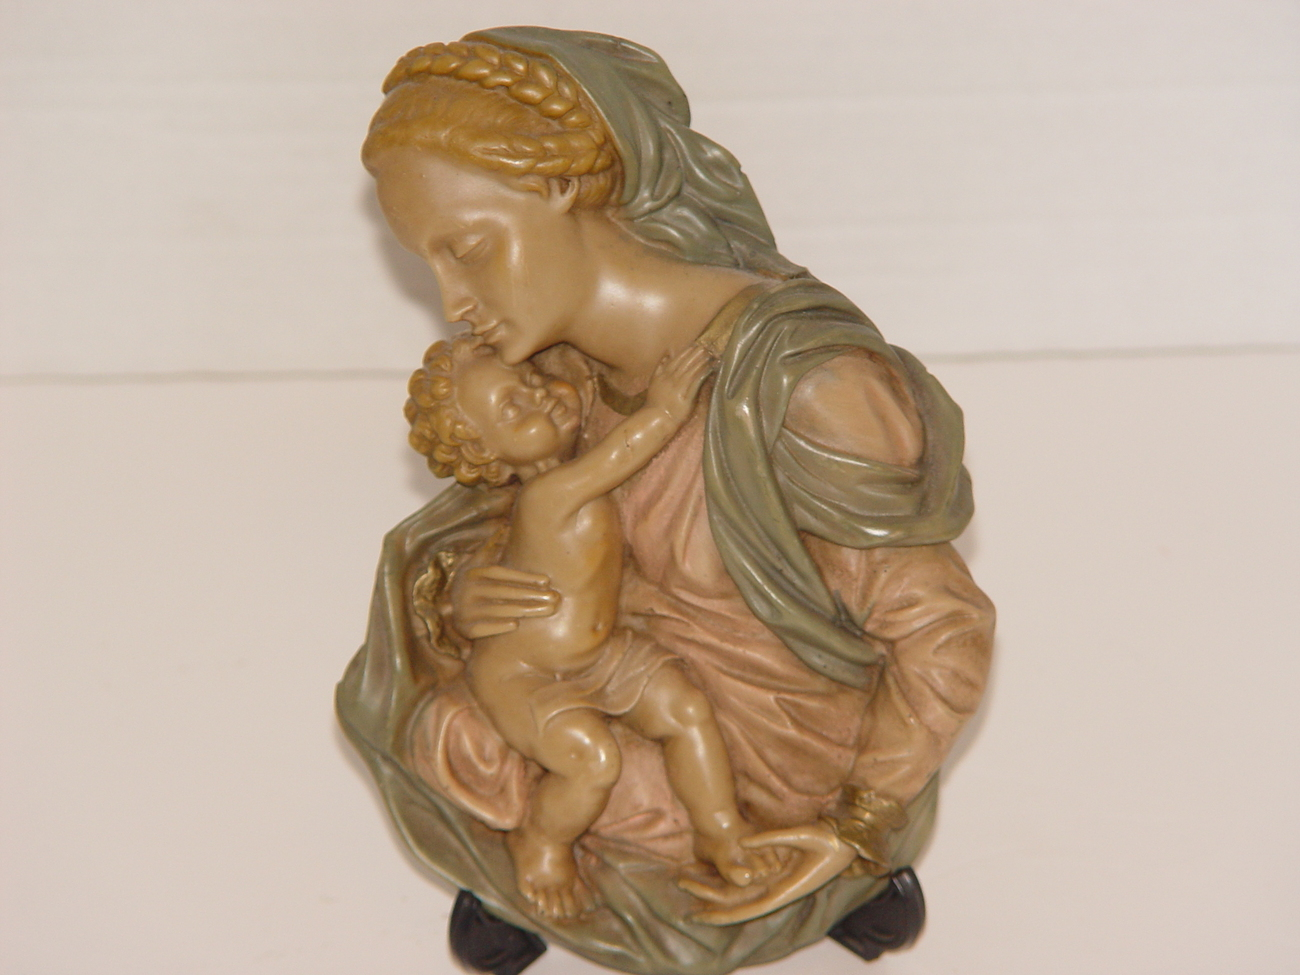 Made in Italy; Mesmerizing Wall Plaque of Madonna and Child